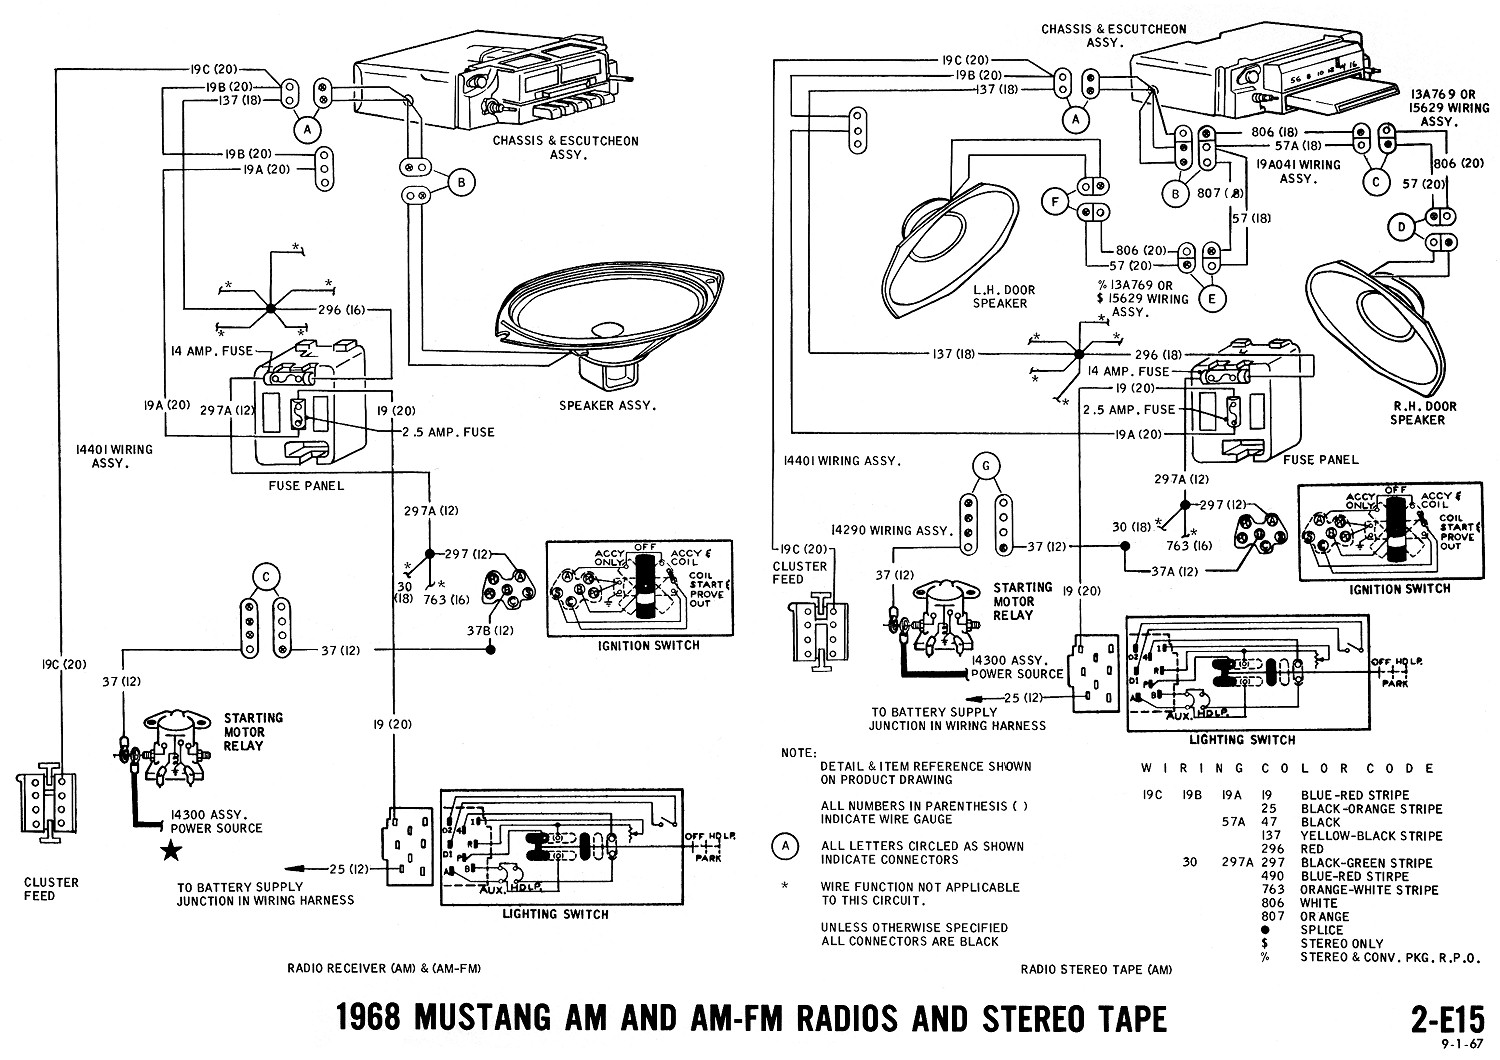 1968 mustang wiring diagrams and vacuum schematics wiring for fender mustang  wiring ford mustang 1965